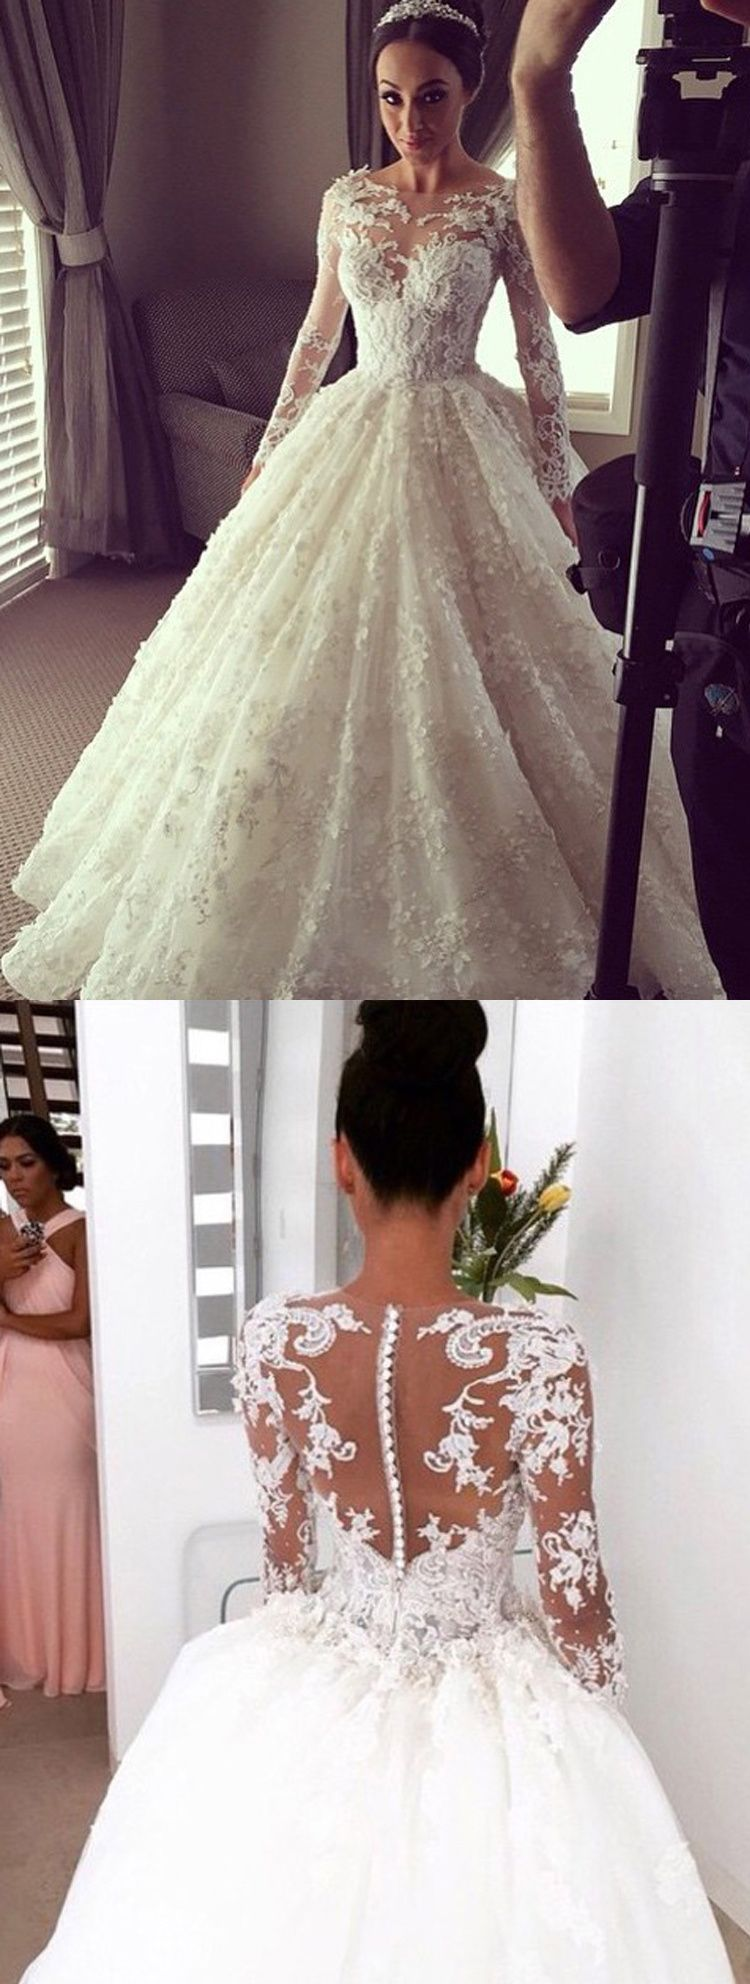 Ball gown wedding dress with bling  Elegant Ball Gown Lace Long Wedding Dress with Long Illusion Sleeves